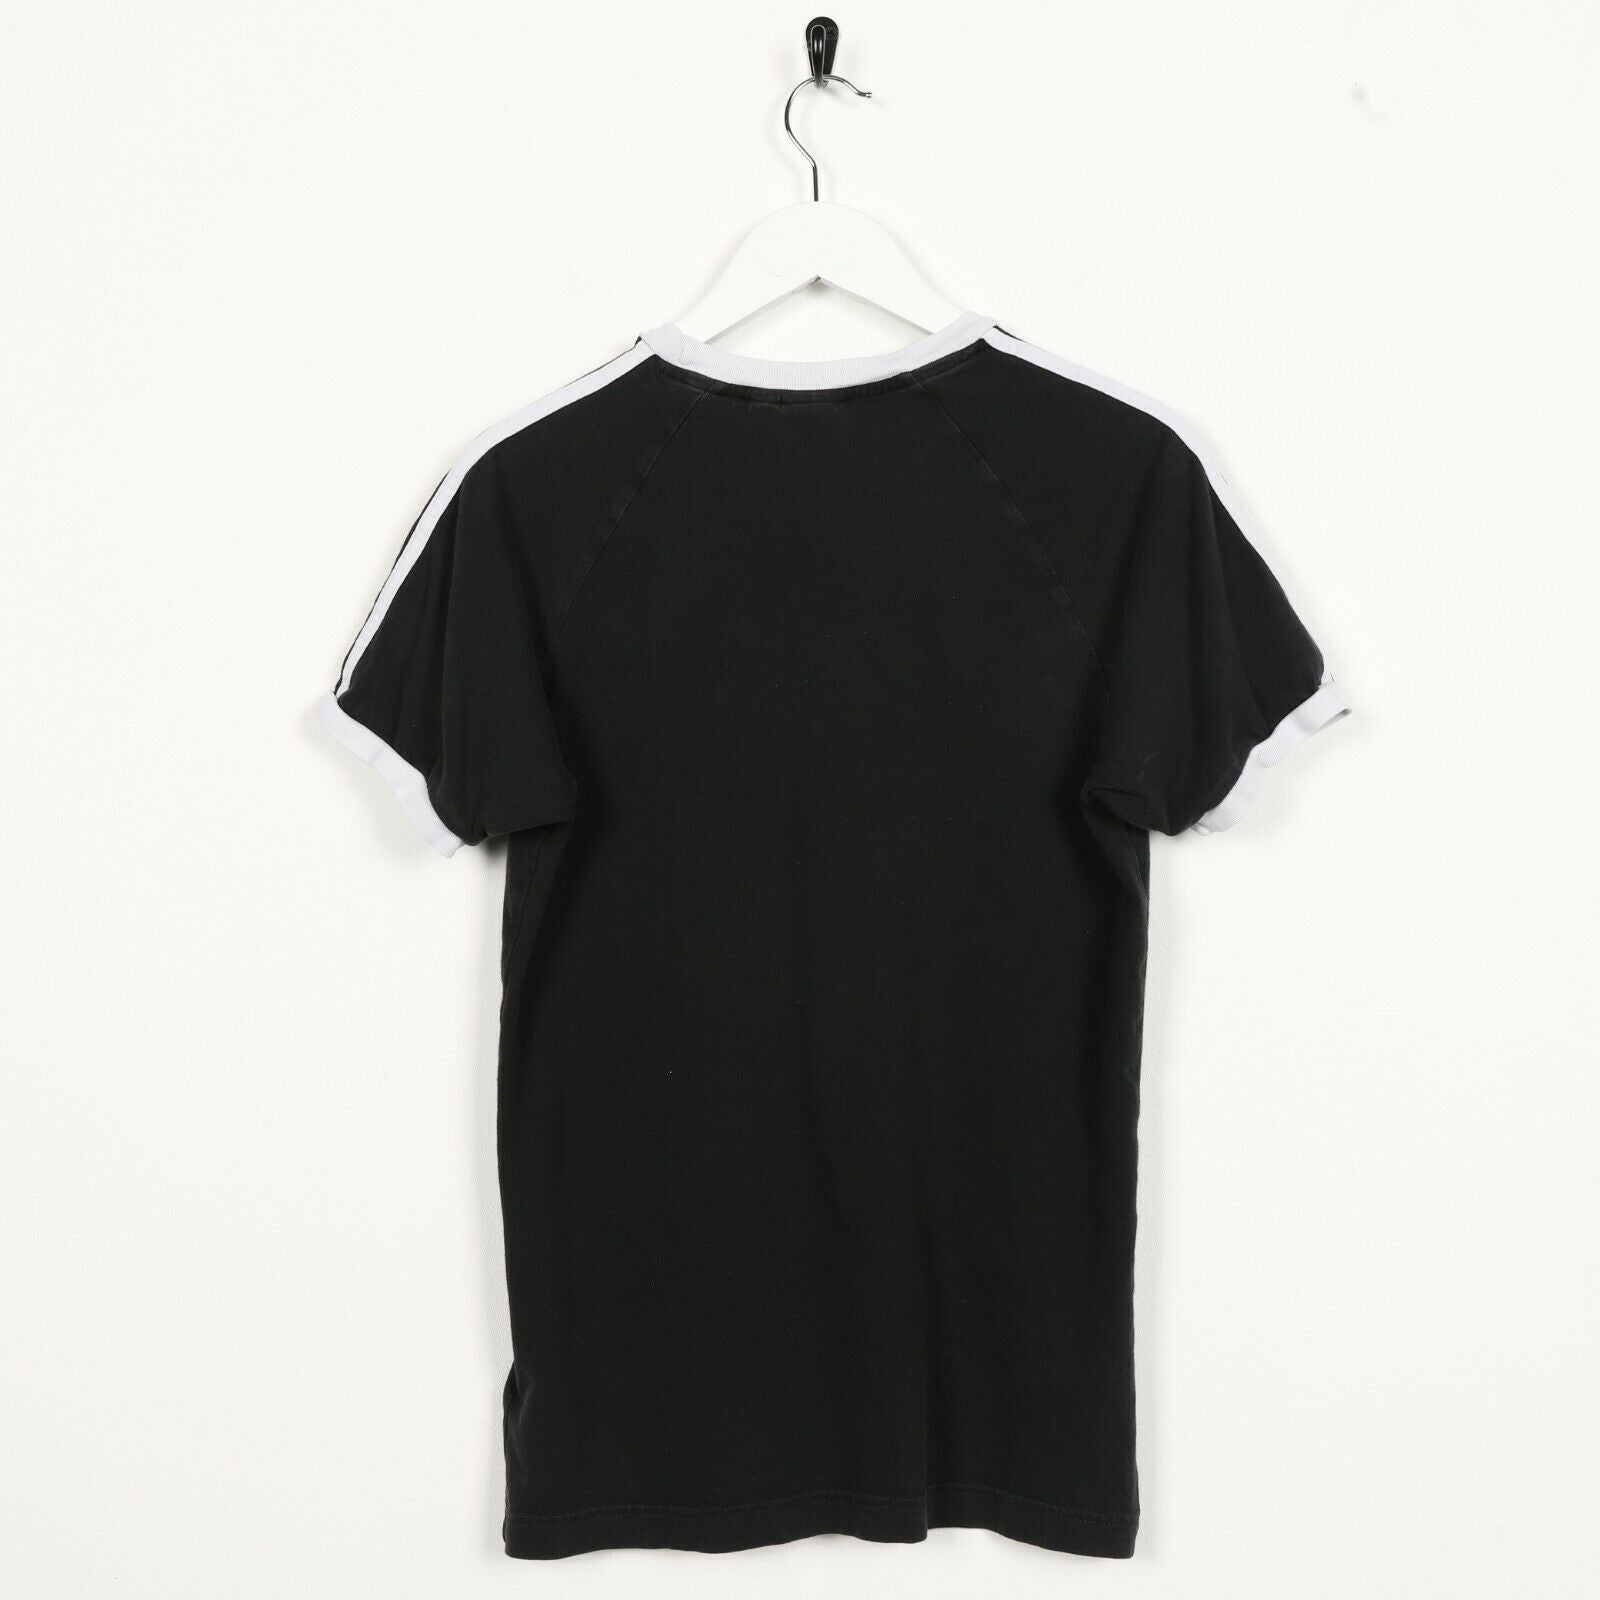 Vintage ADIDAS ORIGINALS Small Logo T Shirt Tee Black | Small S